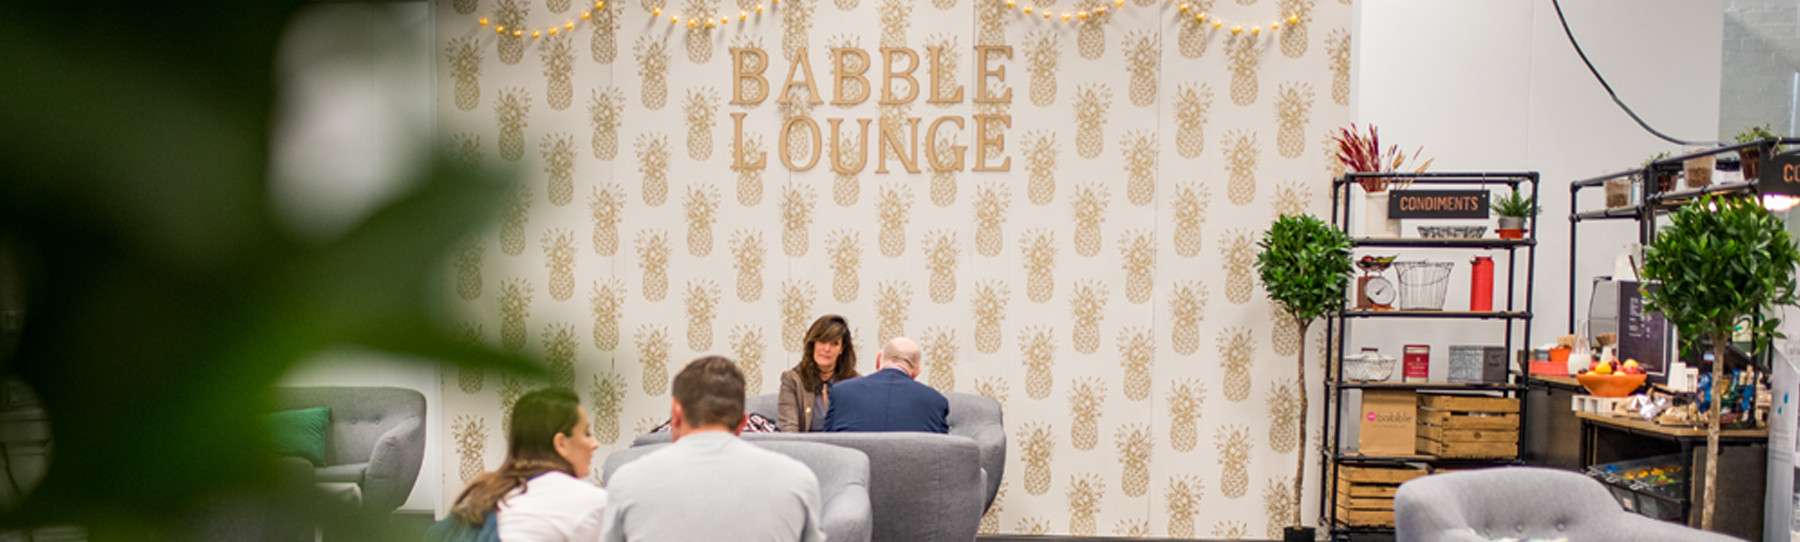 The IVF babble Lounge